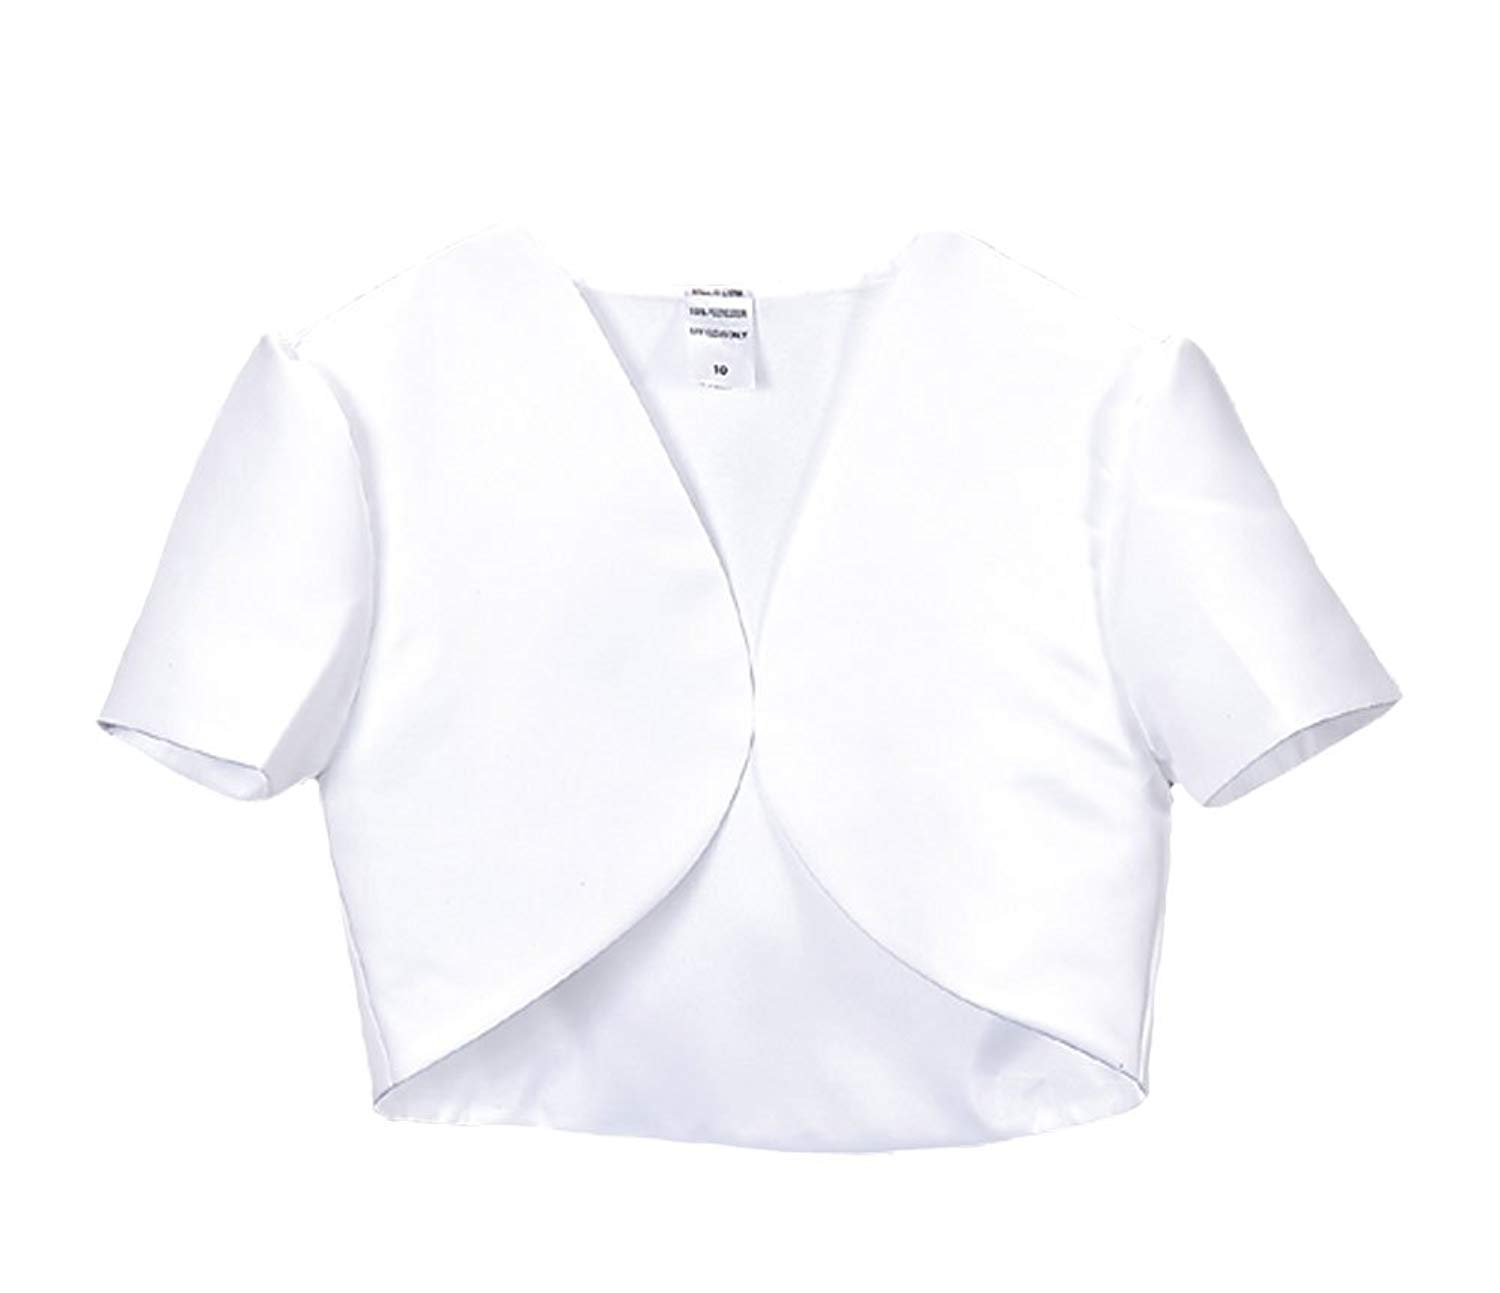 e8e97712e2d86 Get Quotations · Girl s White Short Sleeve Satin Bolero Jacket - Size 20X